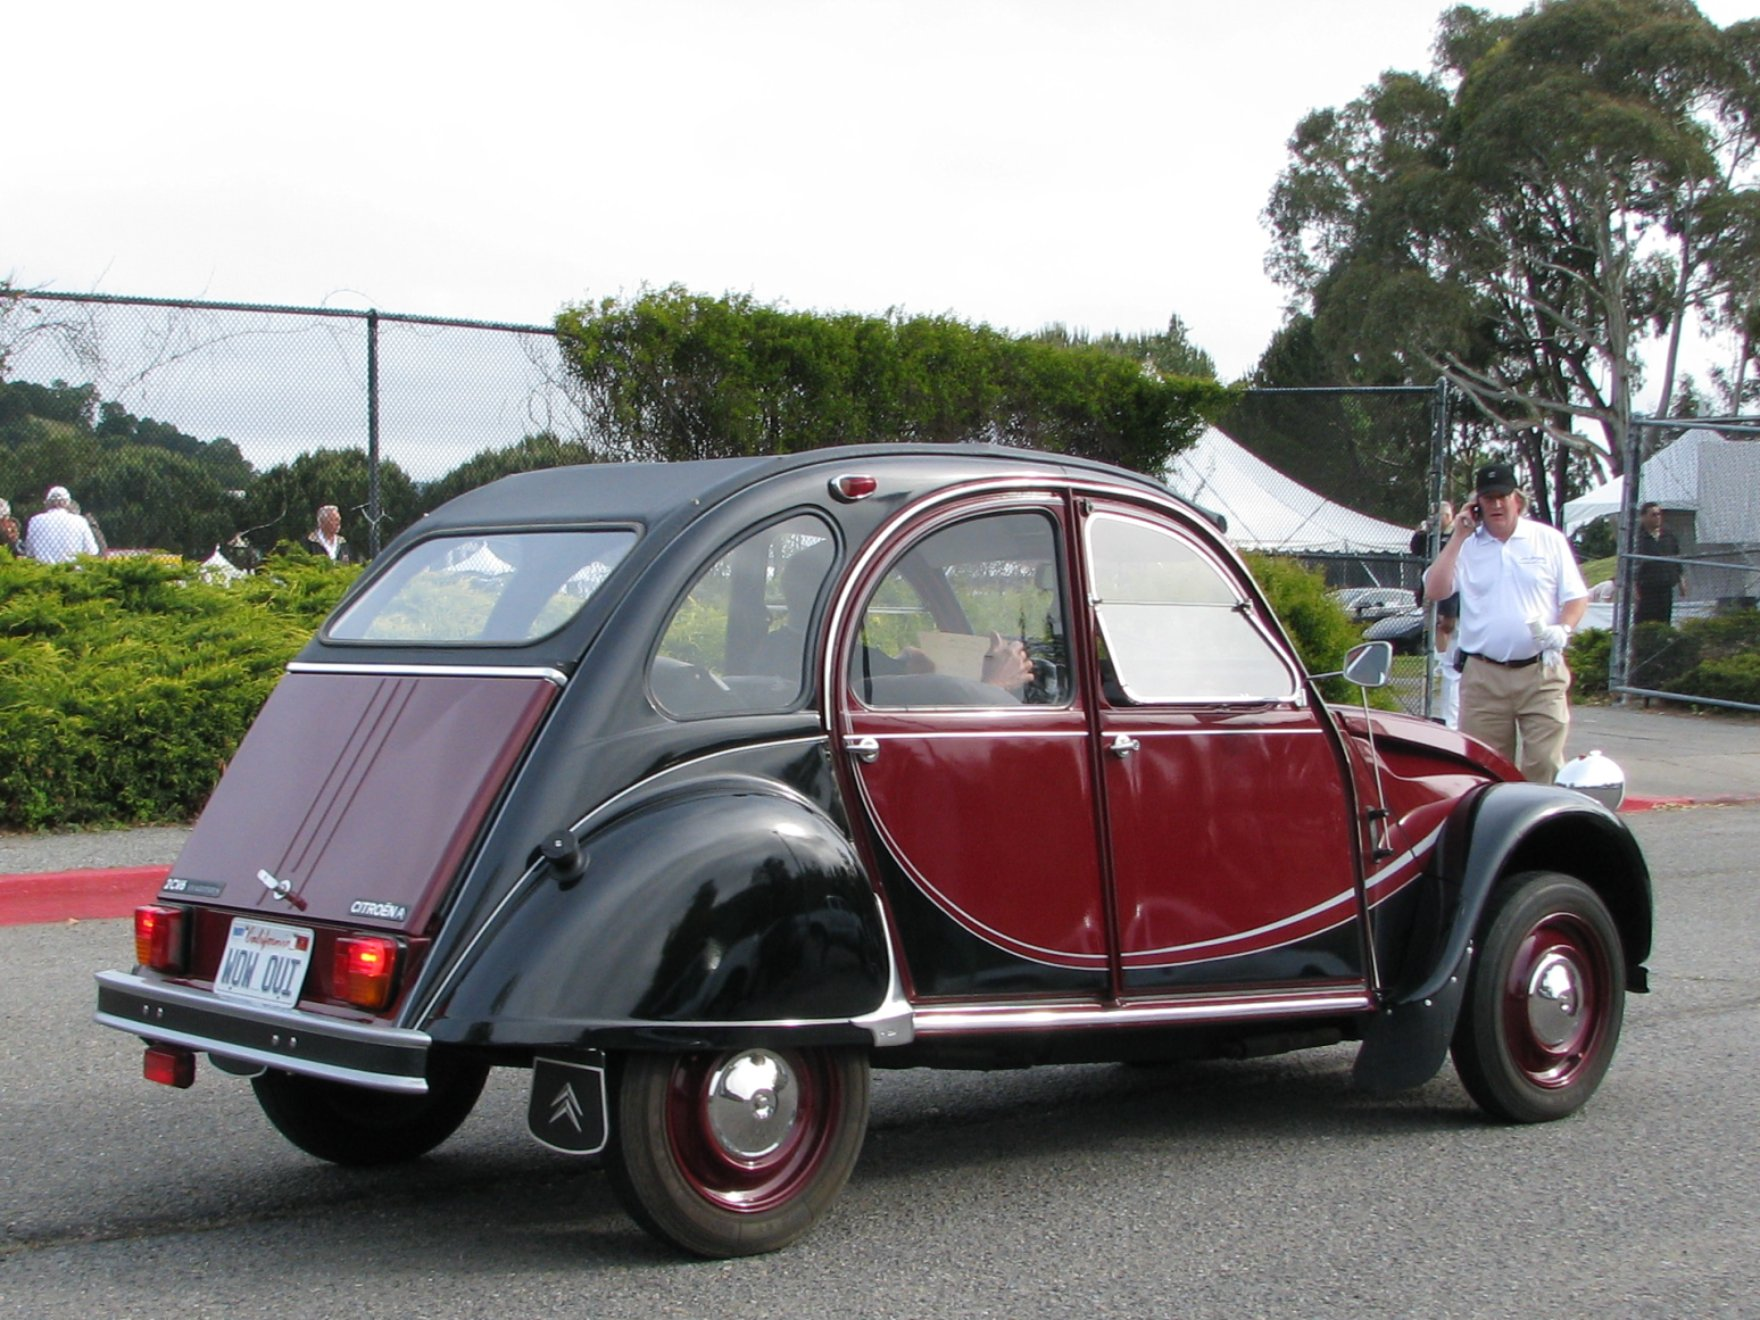 1988 citroen 2cv charleston images pictures and videos. Black Bedroom Furniture Sets. Home Design Ideas